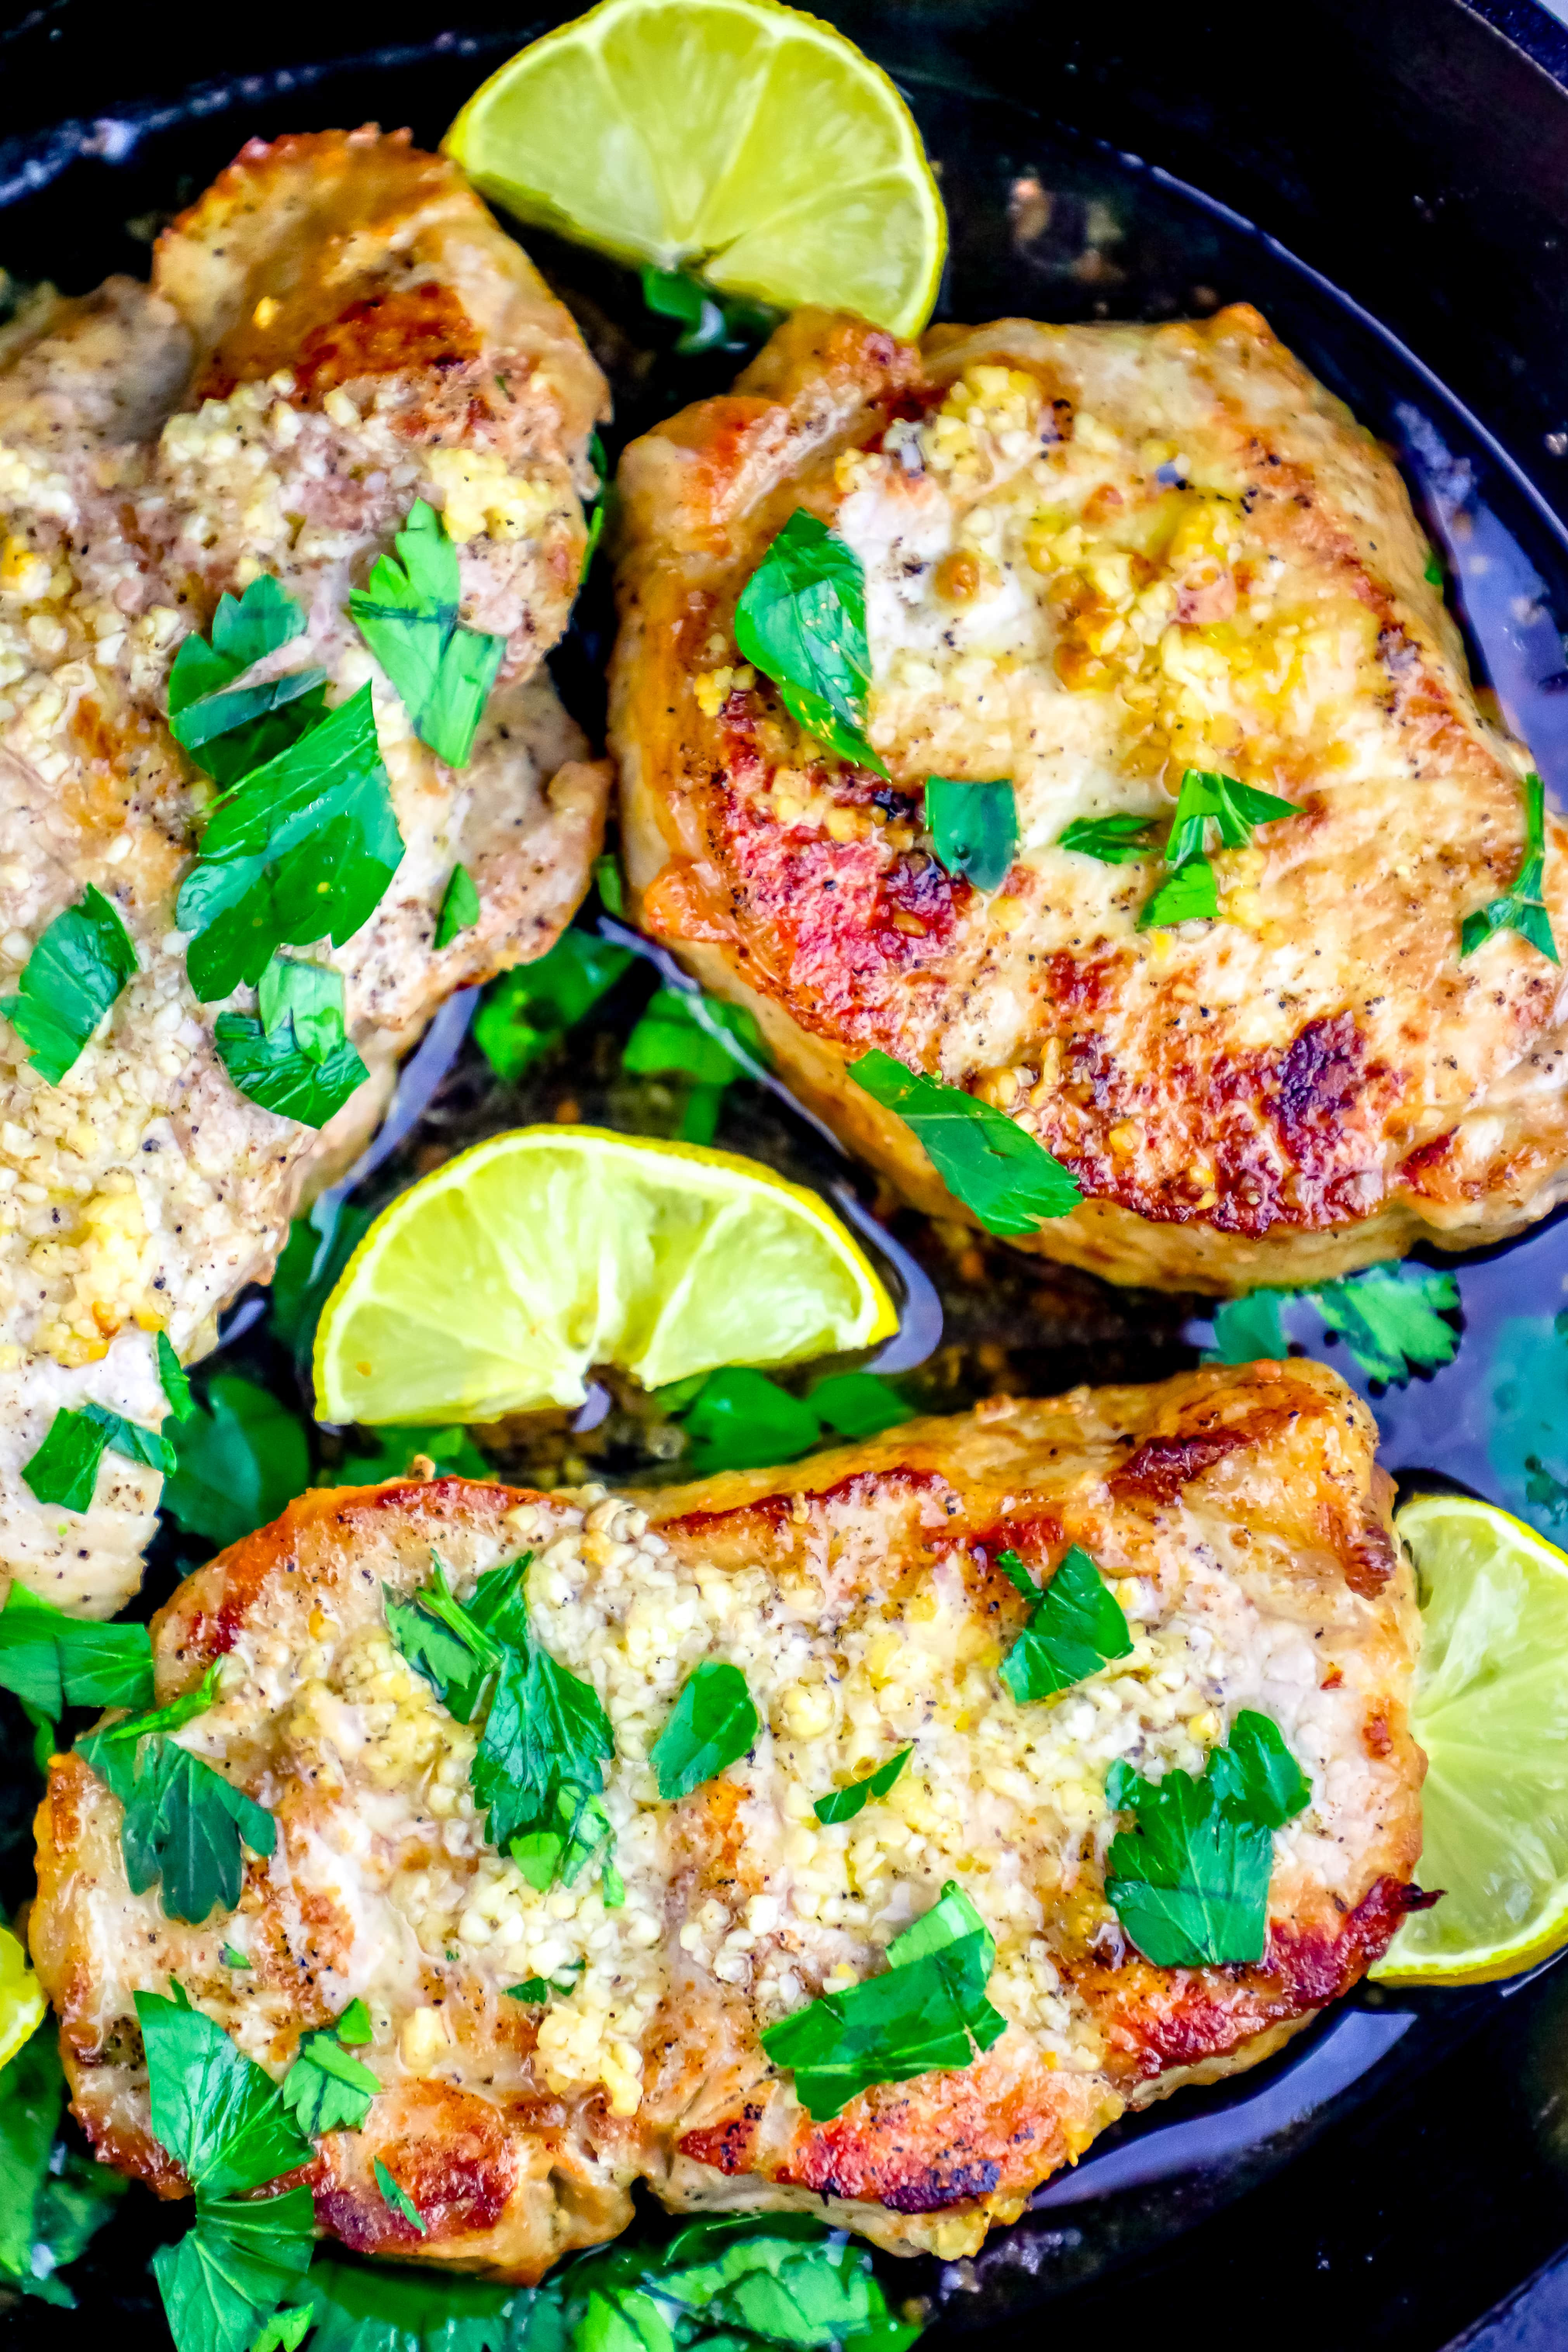 Best Pork Chops Recipe  The Best Baked Garlic Pork Chops Recipe Oven Baked Pork